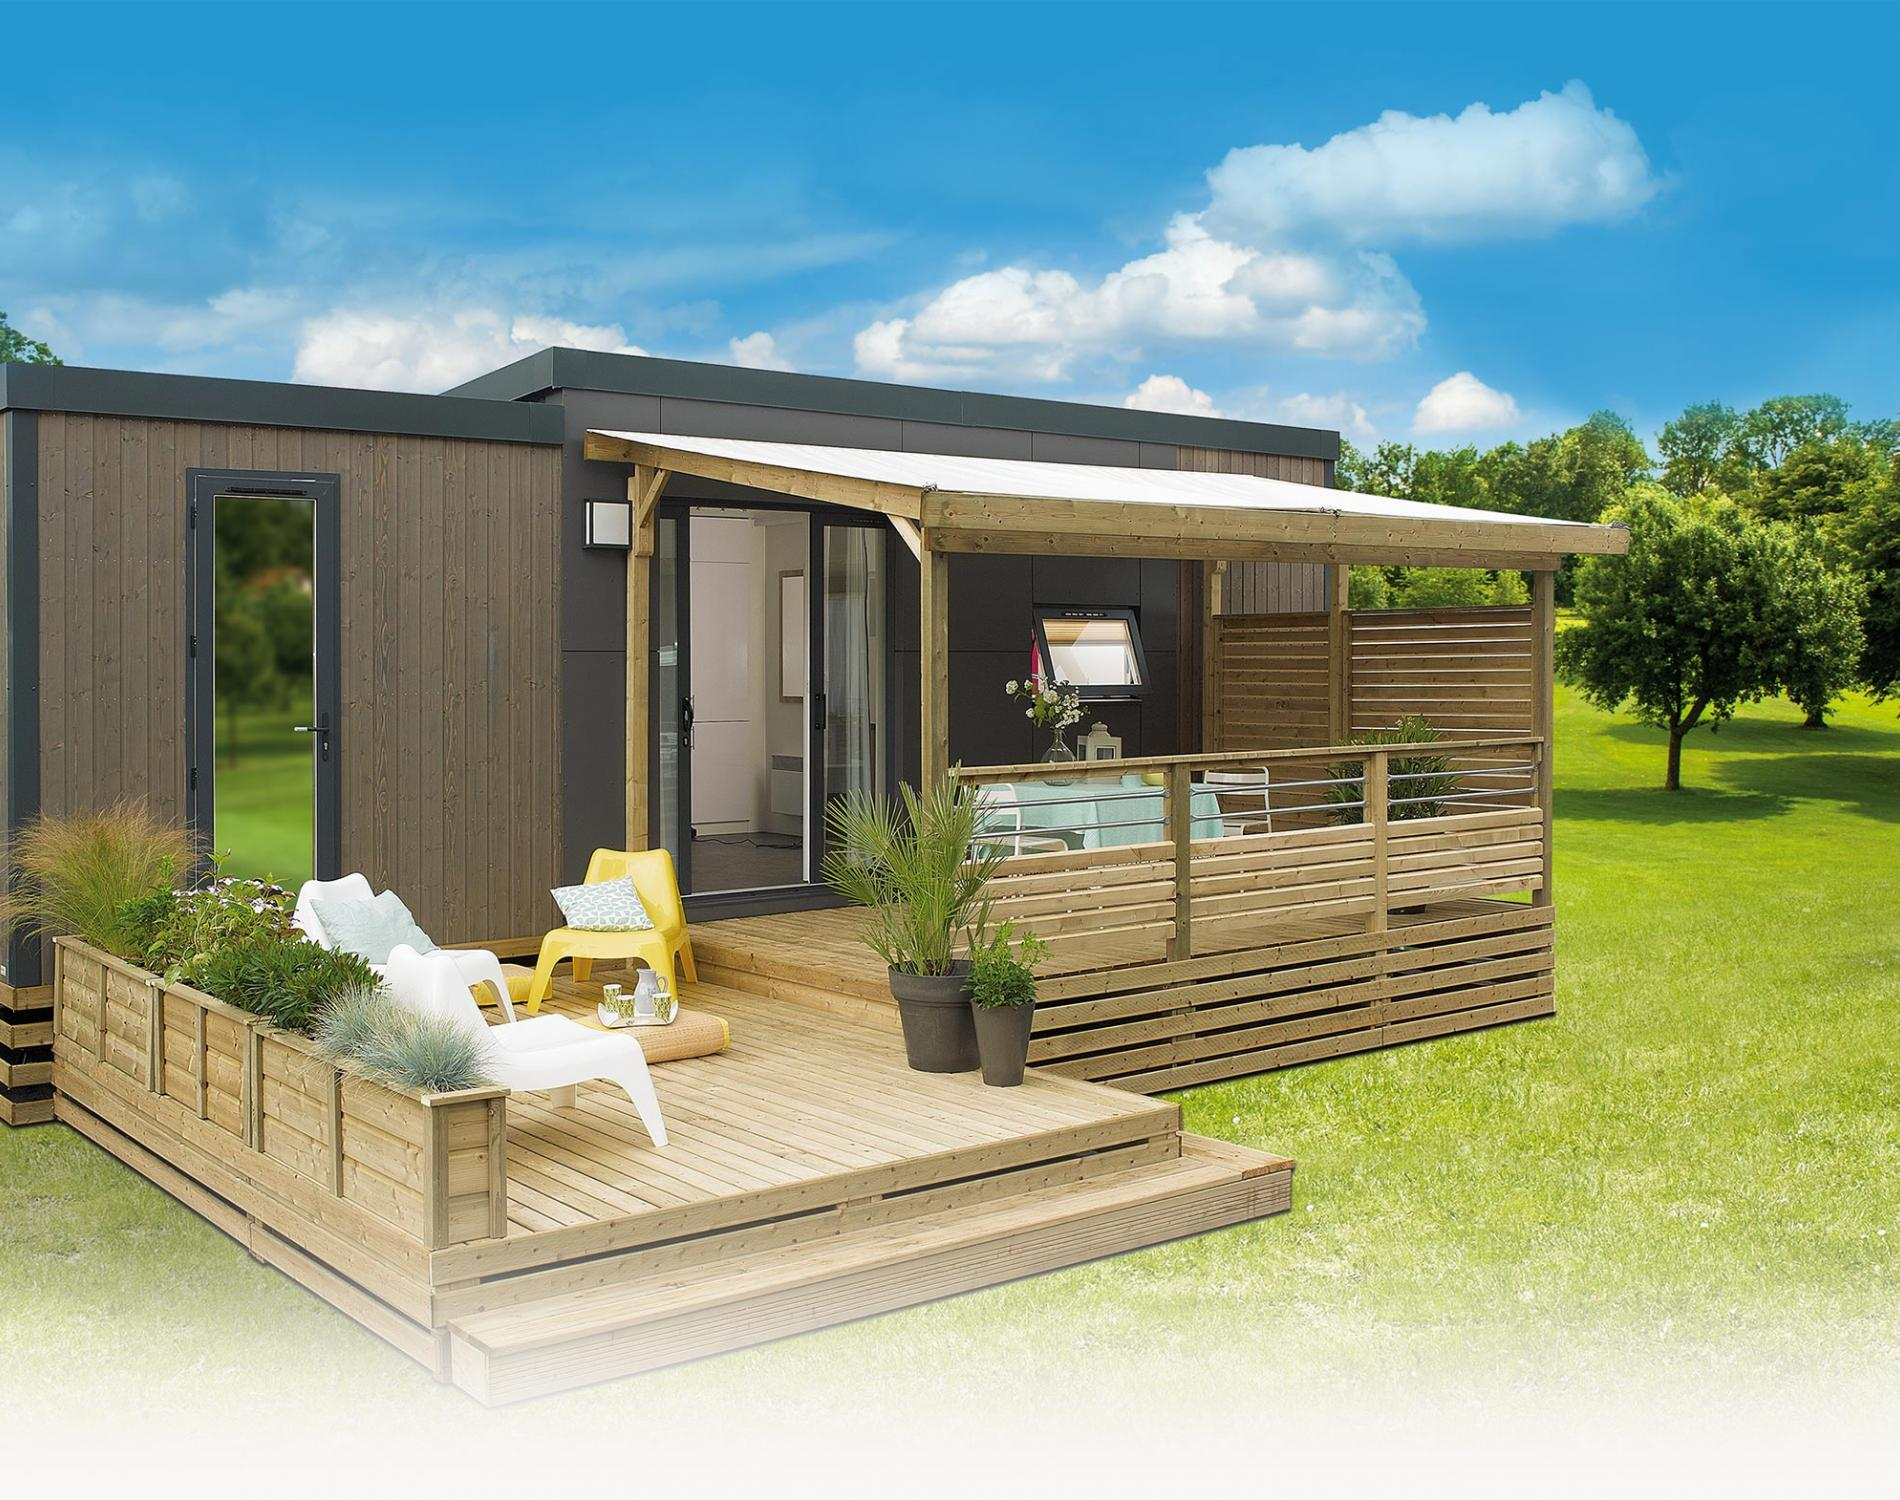 Mobil home occasion sur emplacement herault mobil home occasion deux sevres